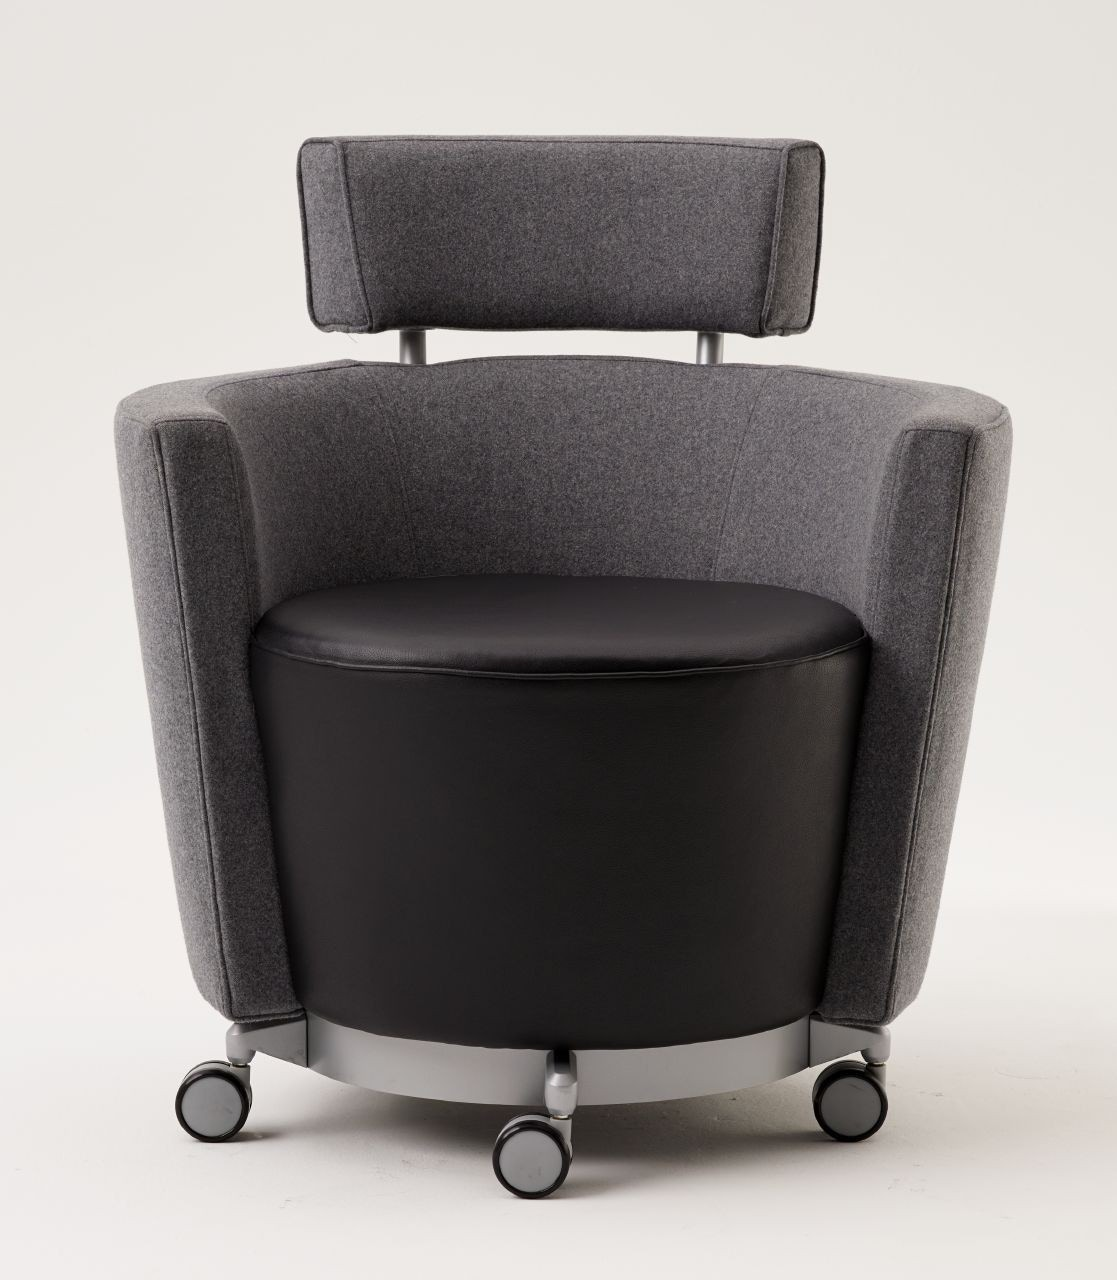 Groovy Haworth Hello Mobile Lounge Chair Dailytribune Chair Design For Home Dailytribuneorg